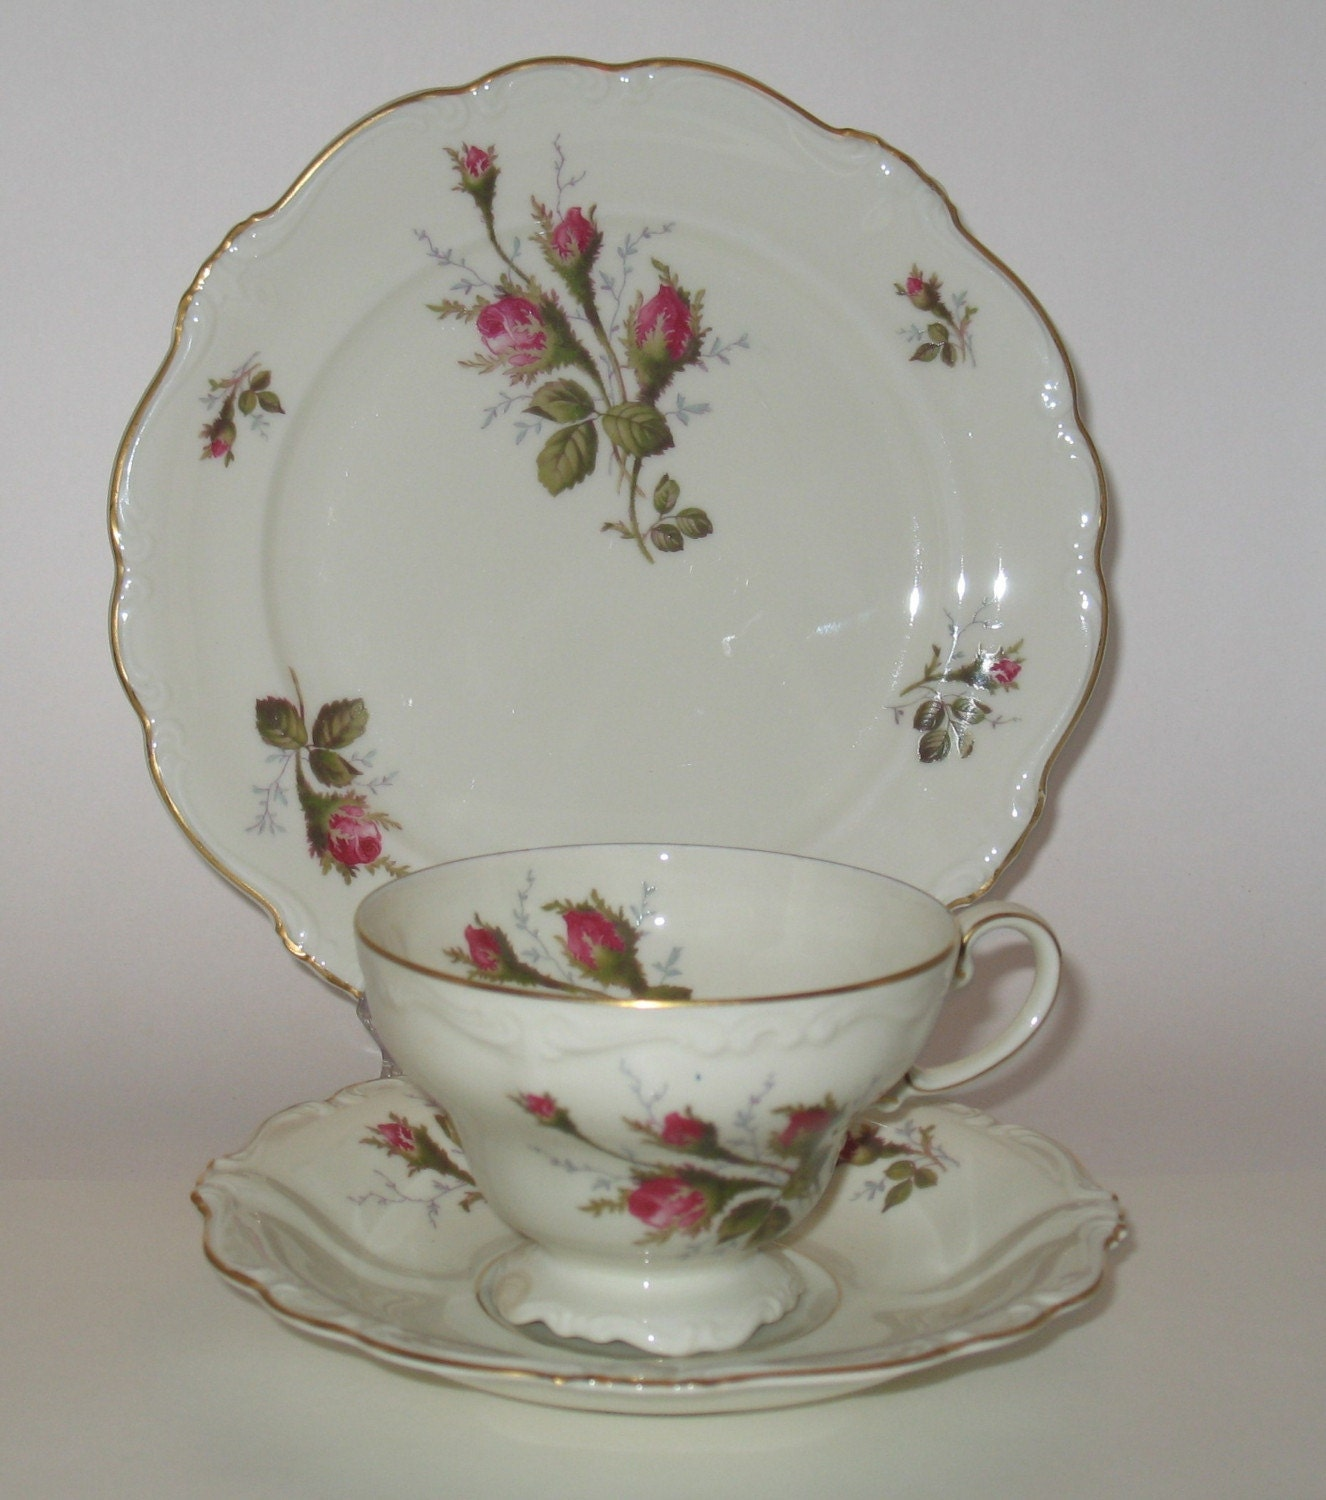 Moss Rose Vintage Tea Set By Rosenthal China By